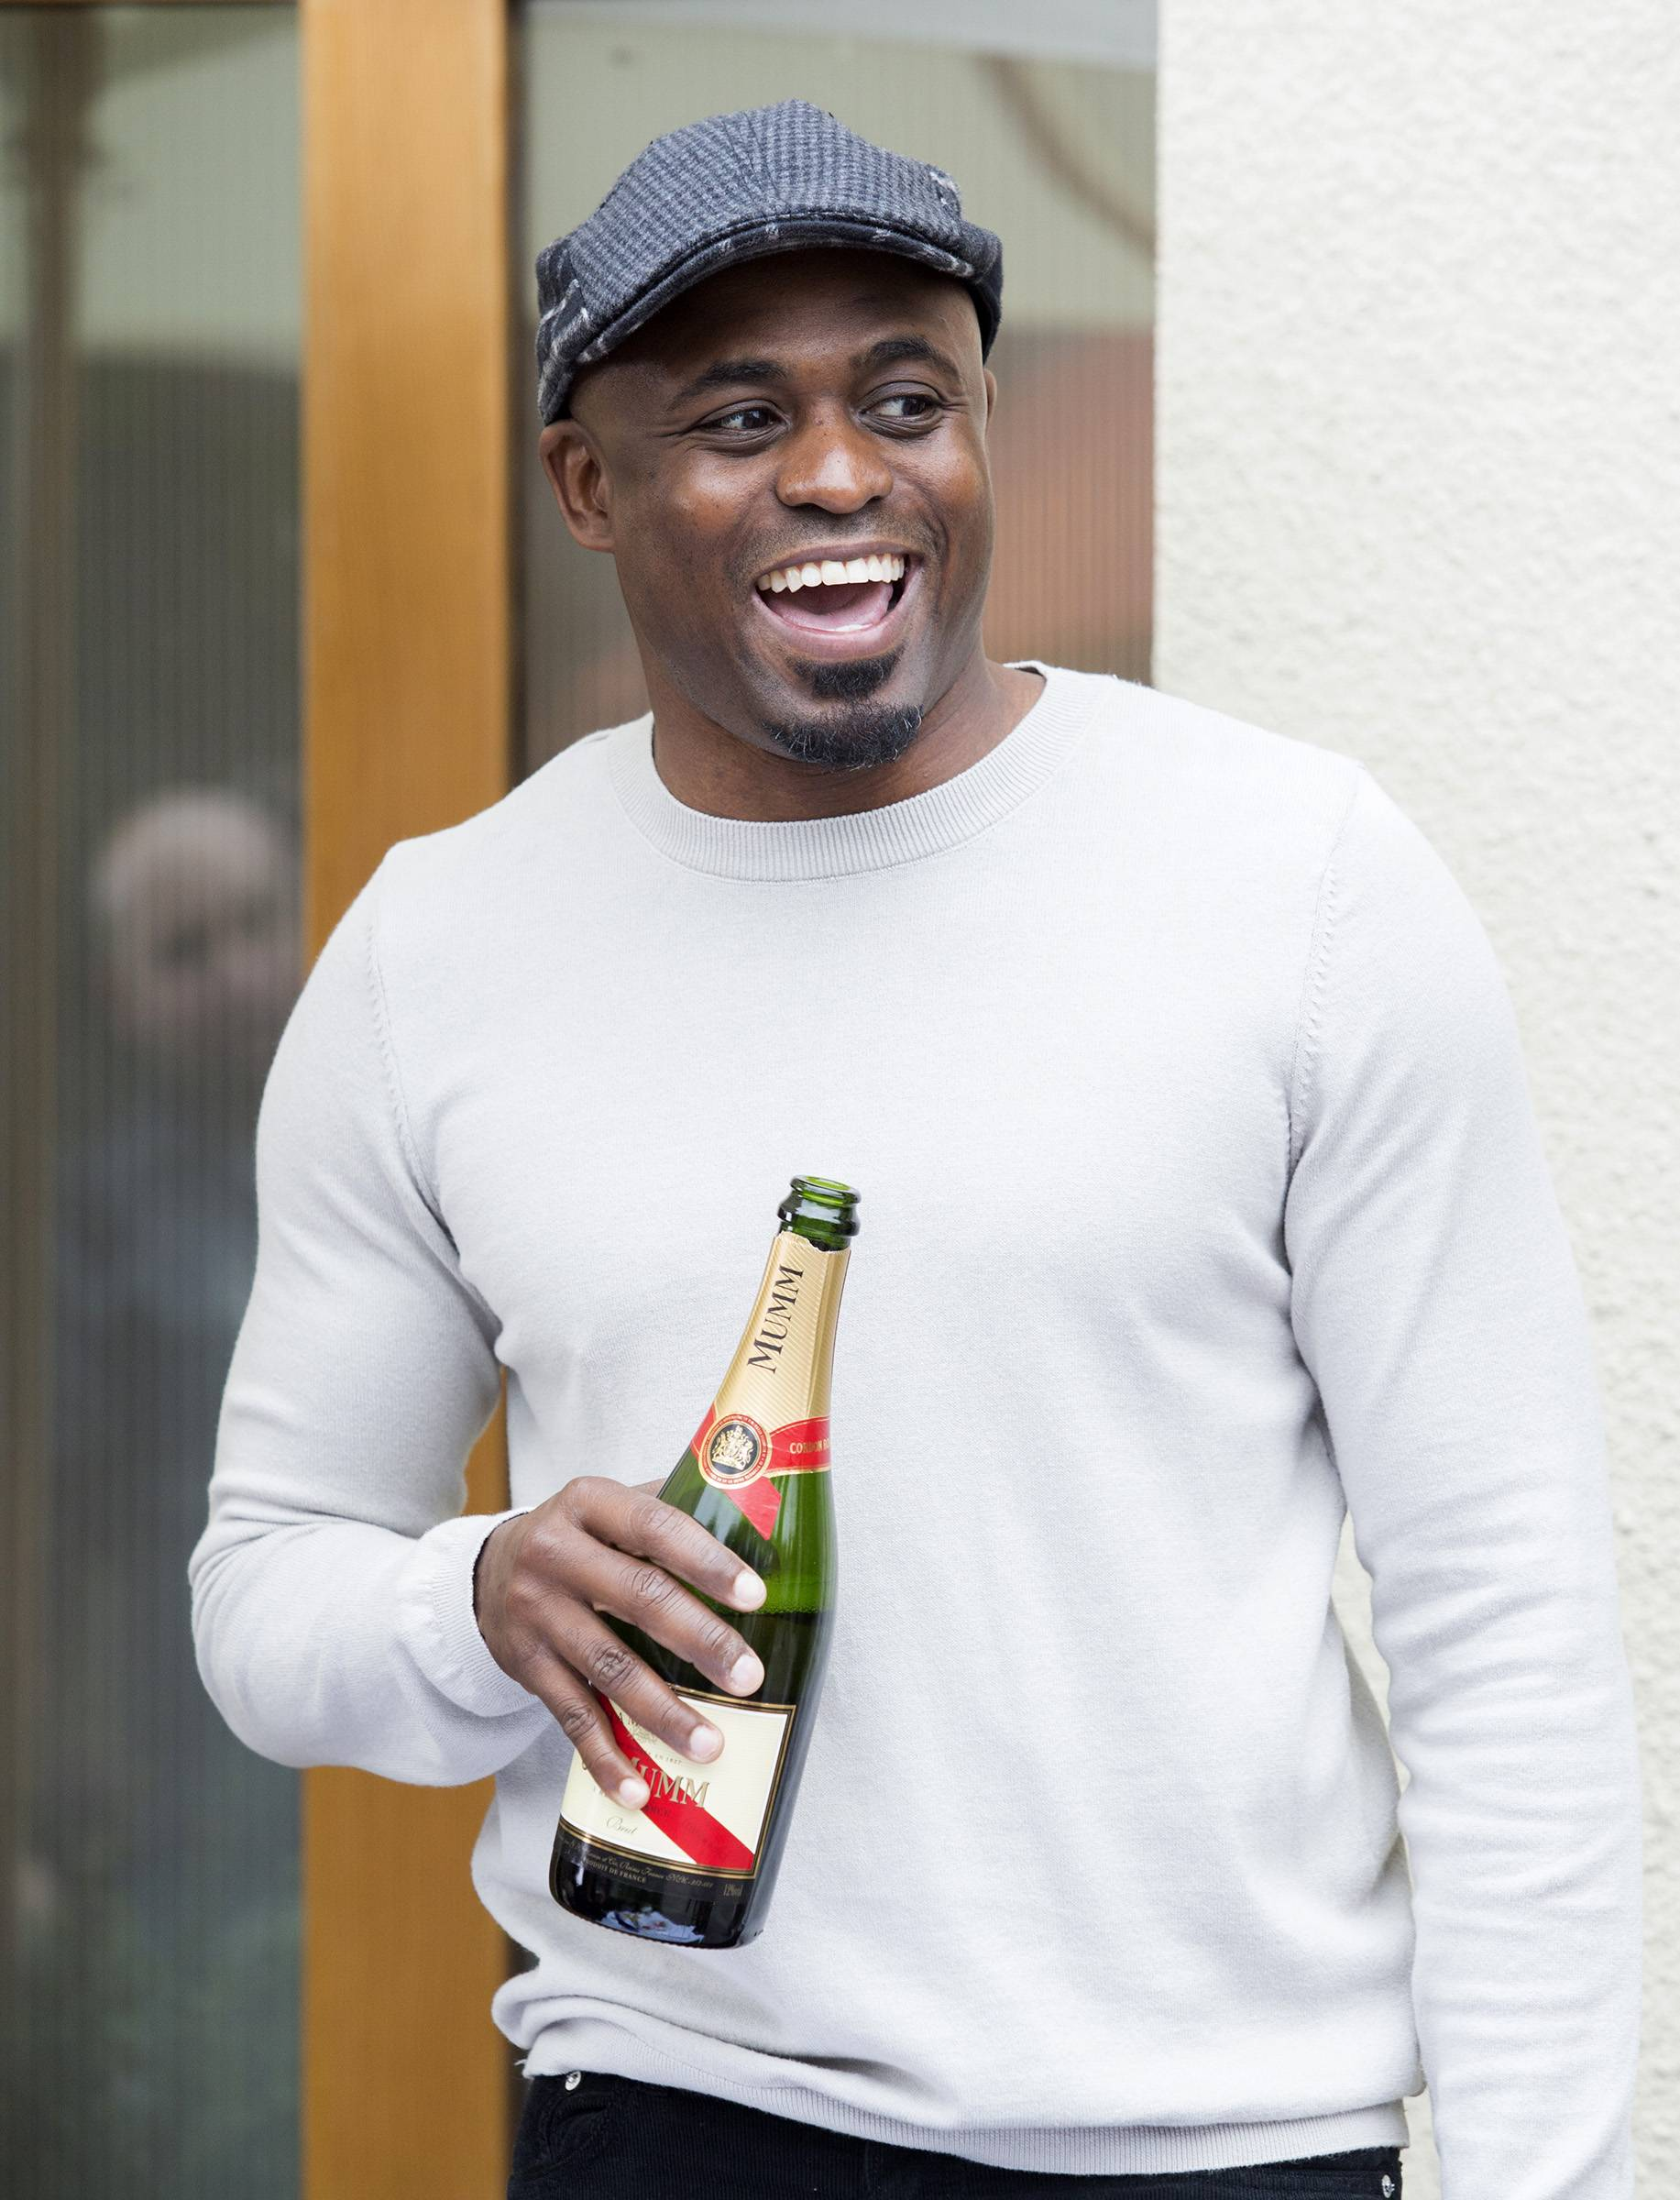 He's still celebrating even though he didn't get his dream role. - (Photo: BET)